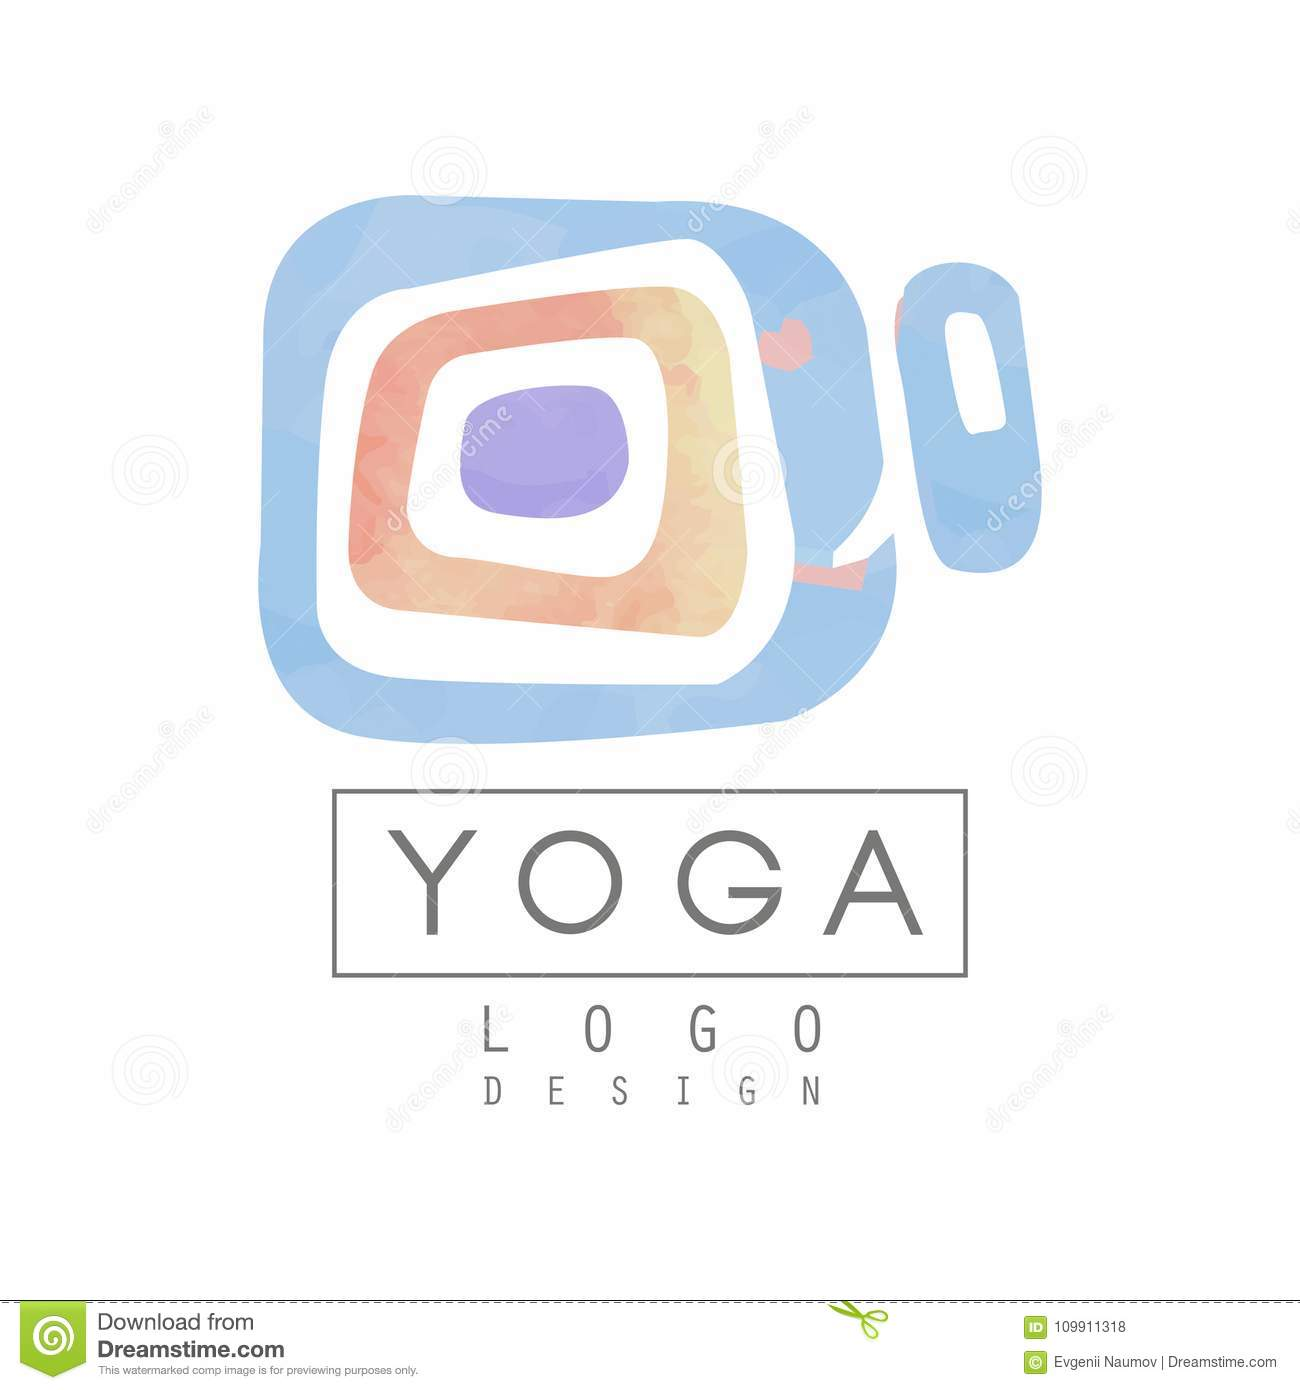 Abstract logo template for yoga studio or meditation center. Watercolor painting. Alternative medicine and wellness